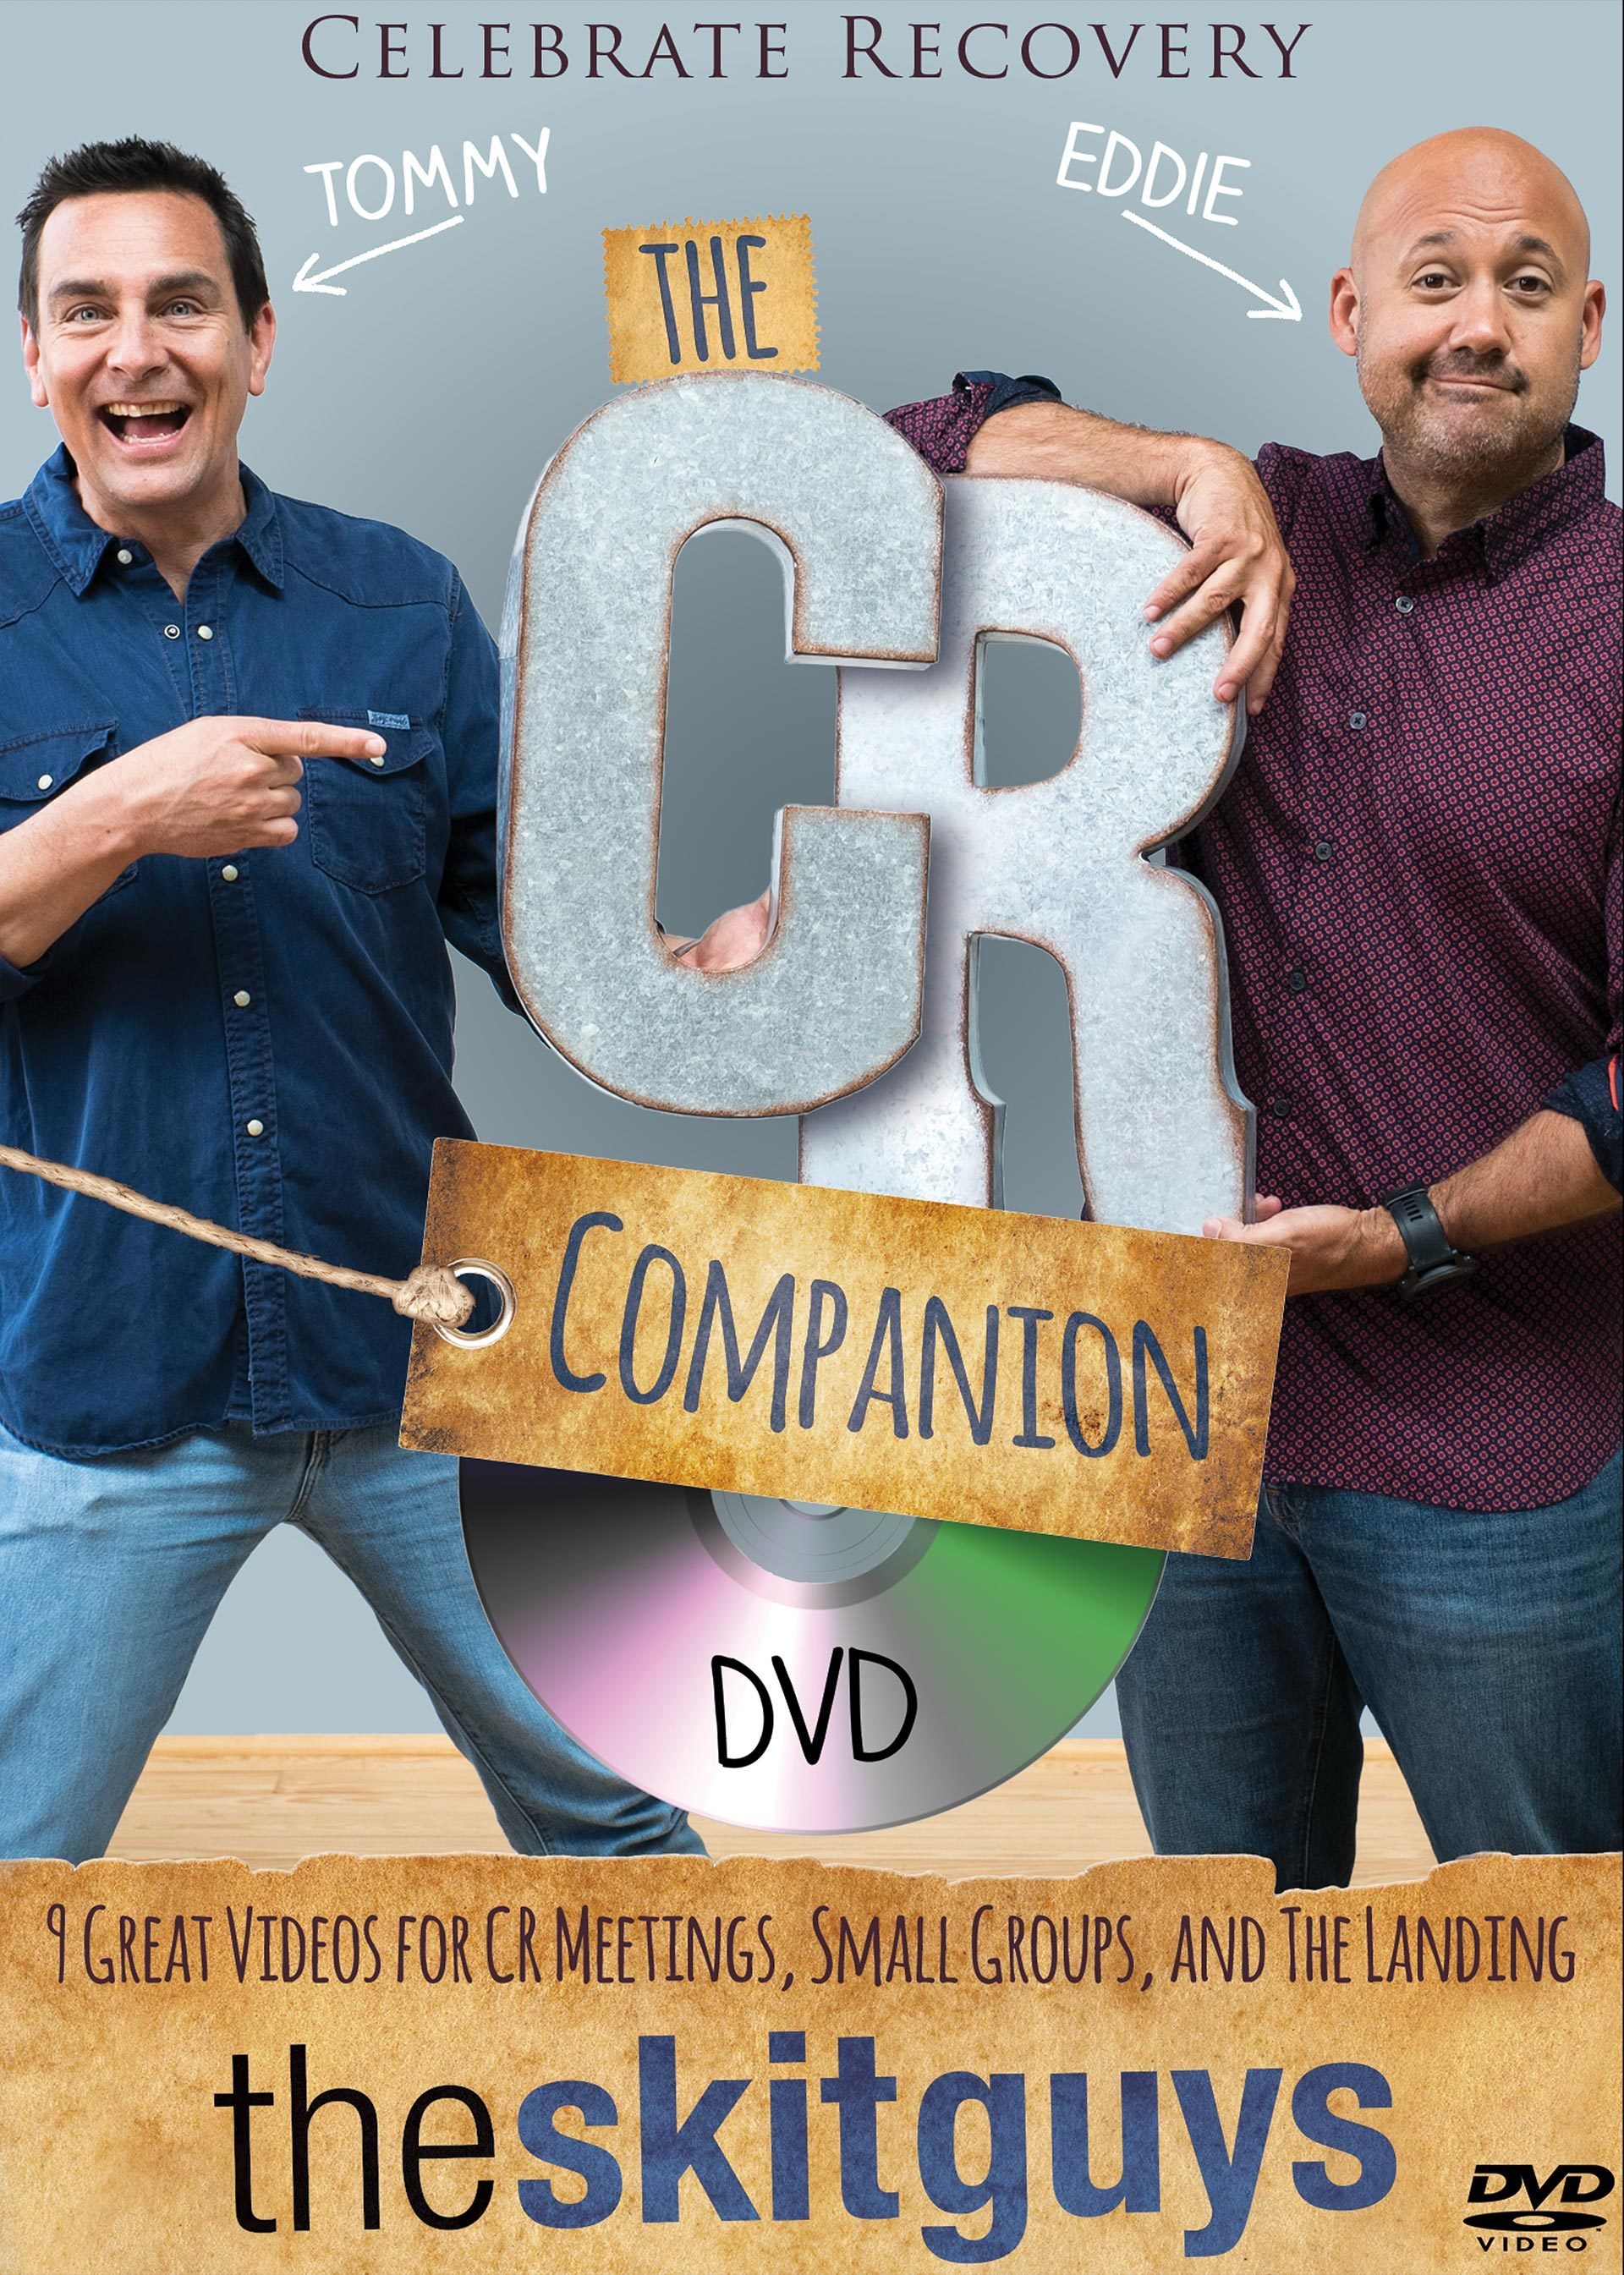 The CR Companion DVD DVD Image